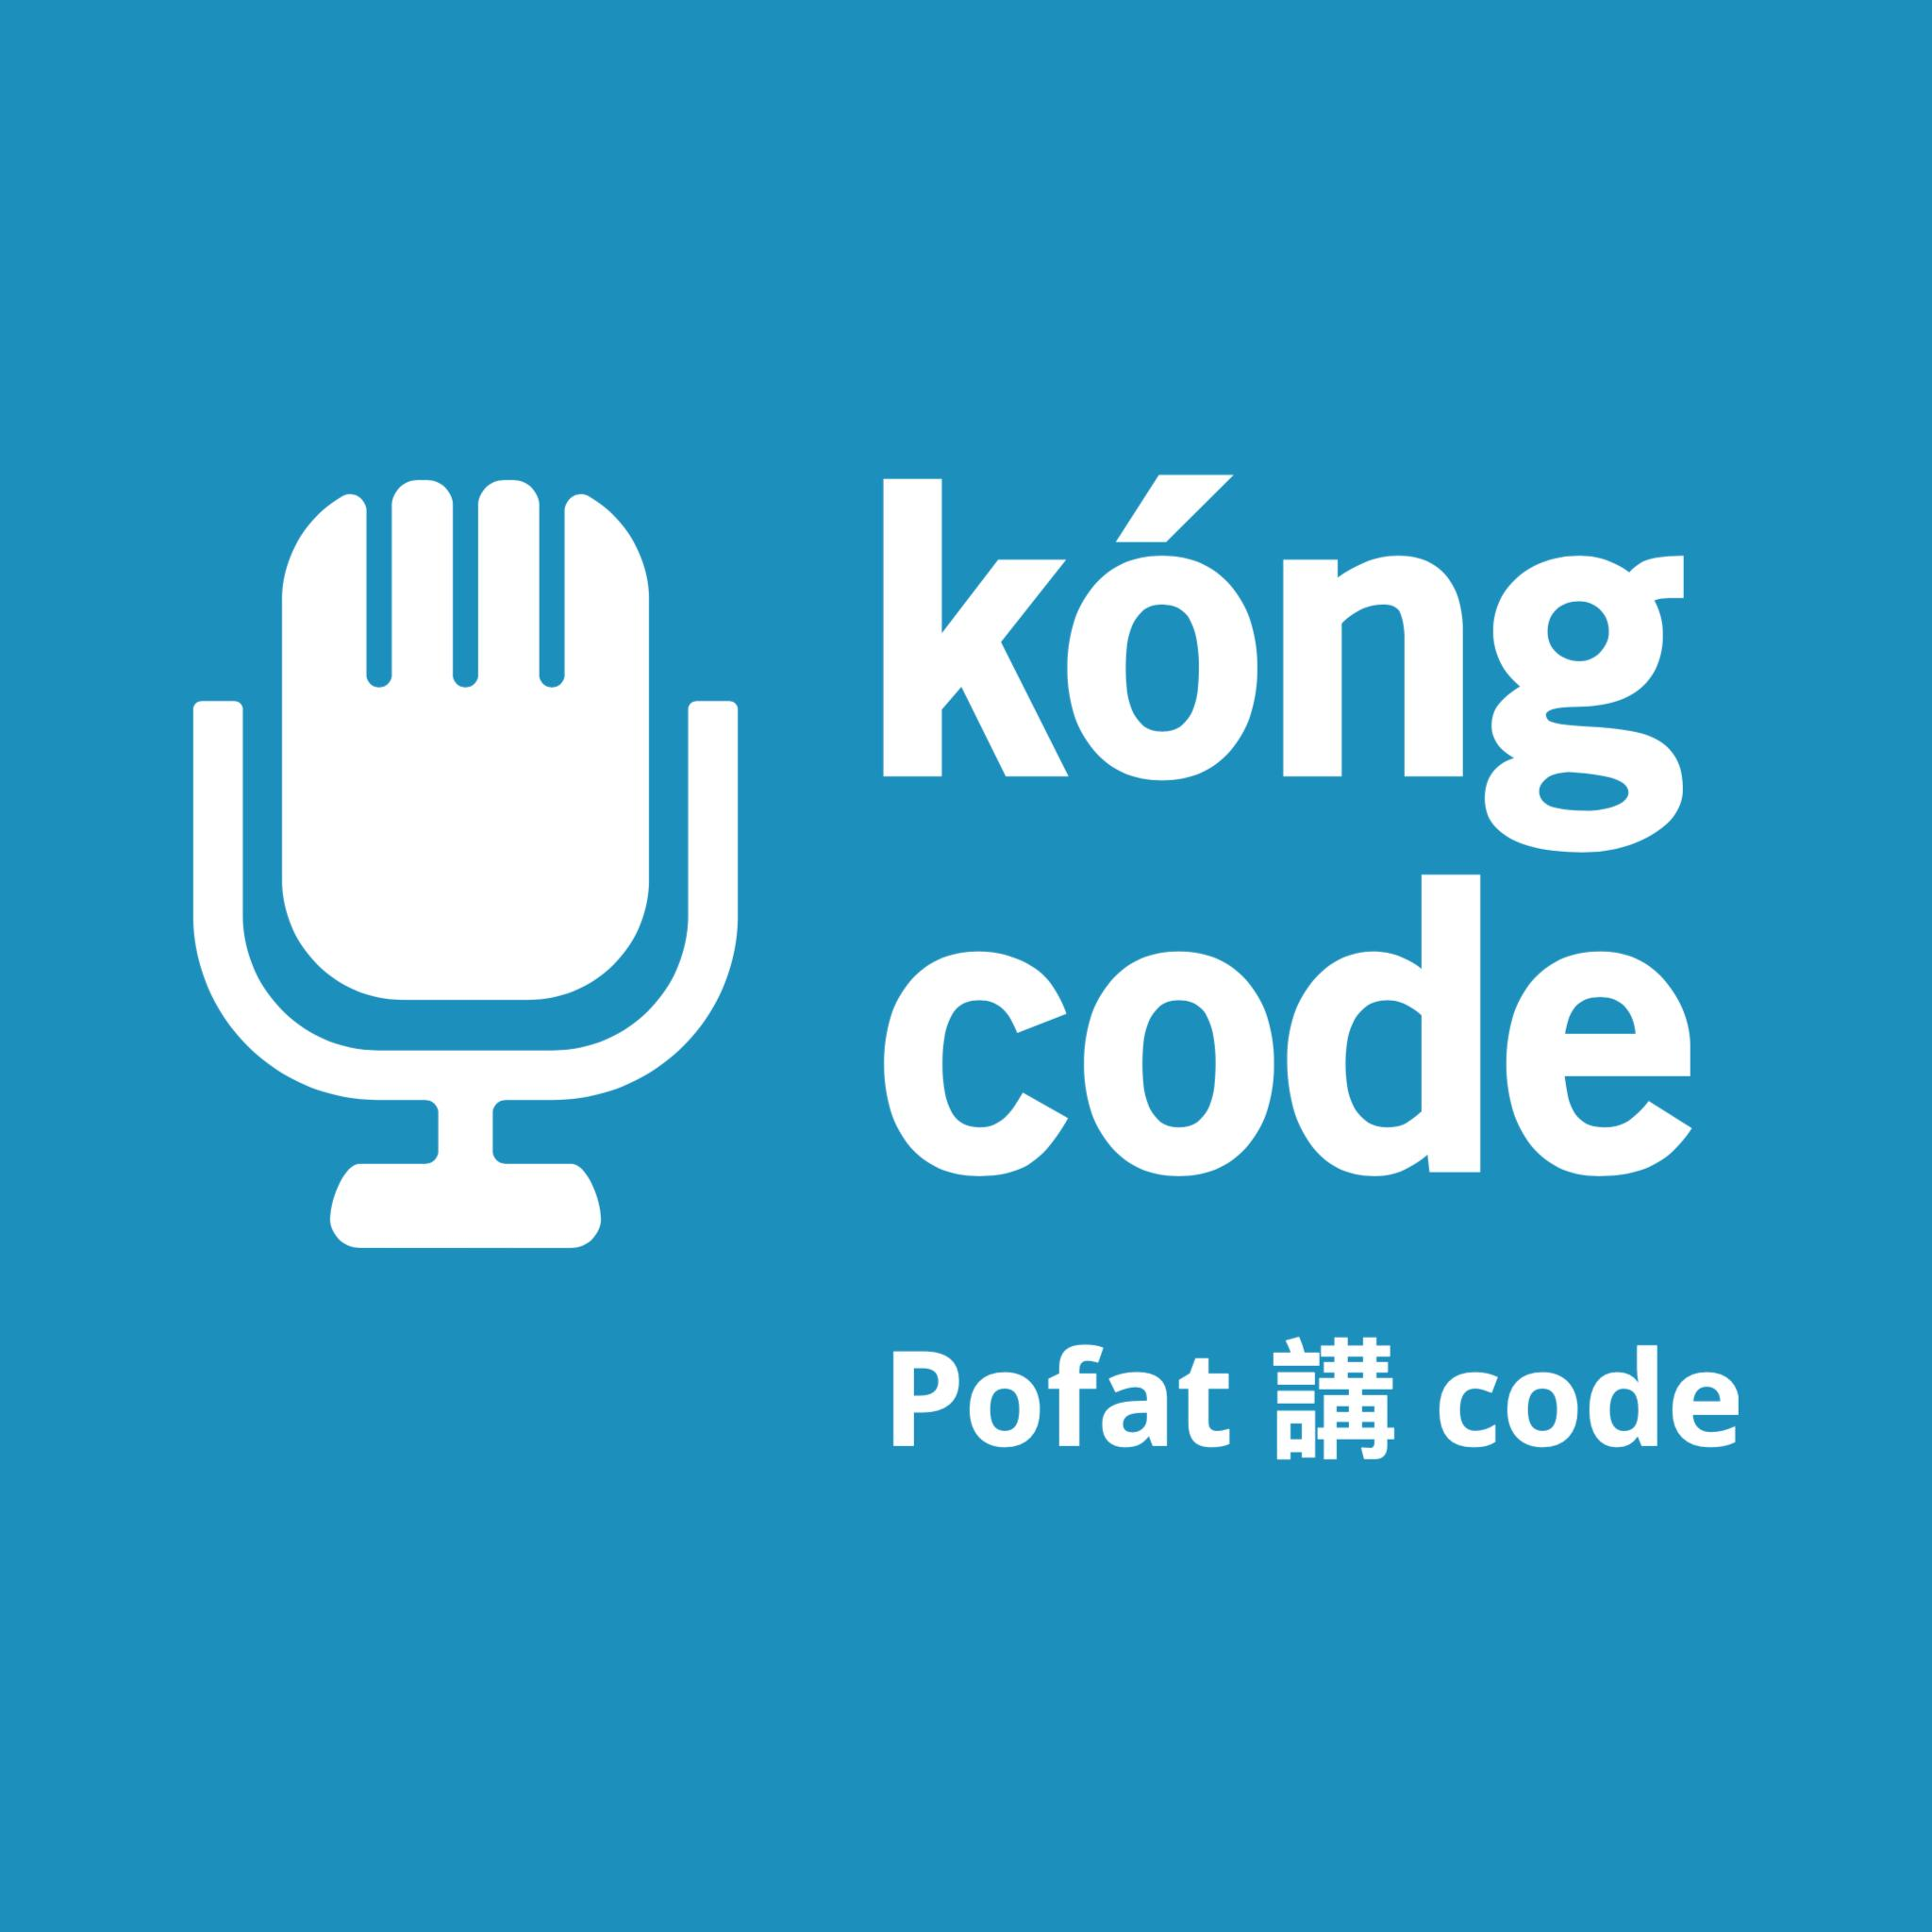 Pofat 講 code podcast logo